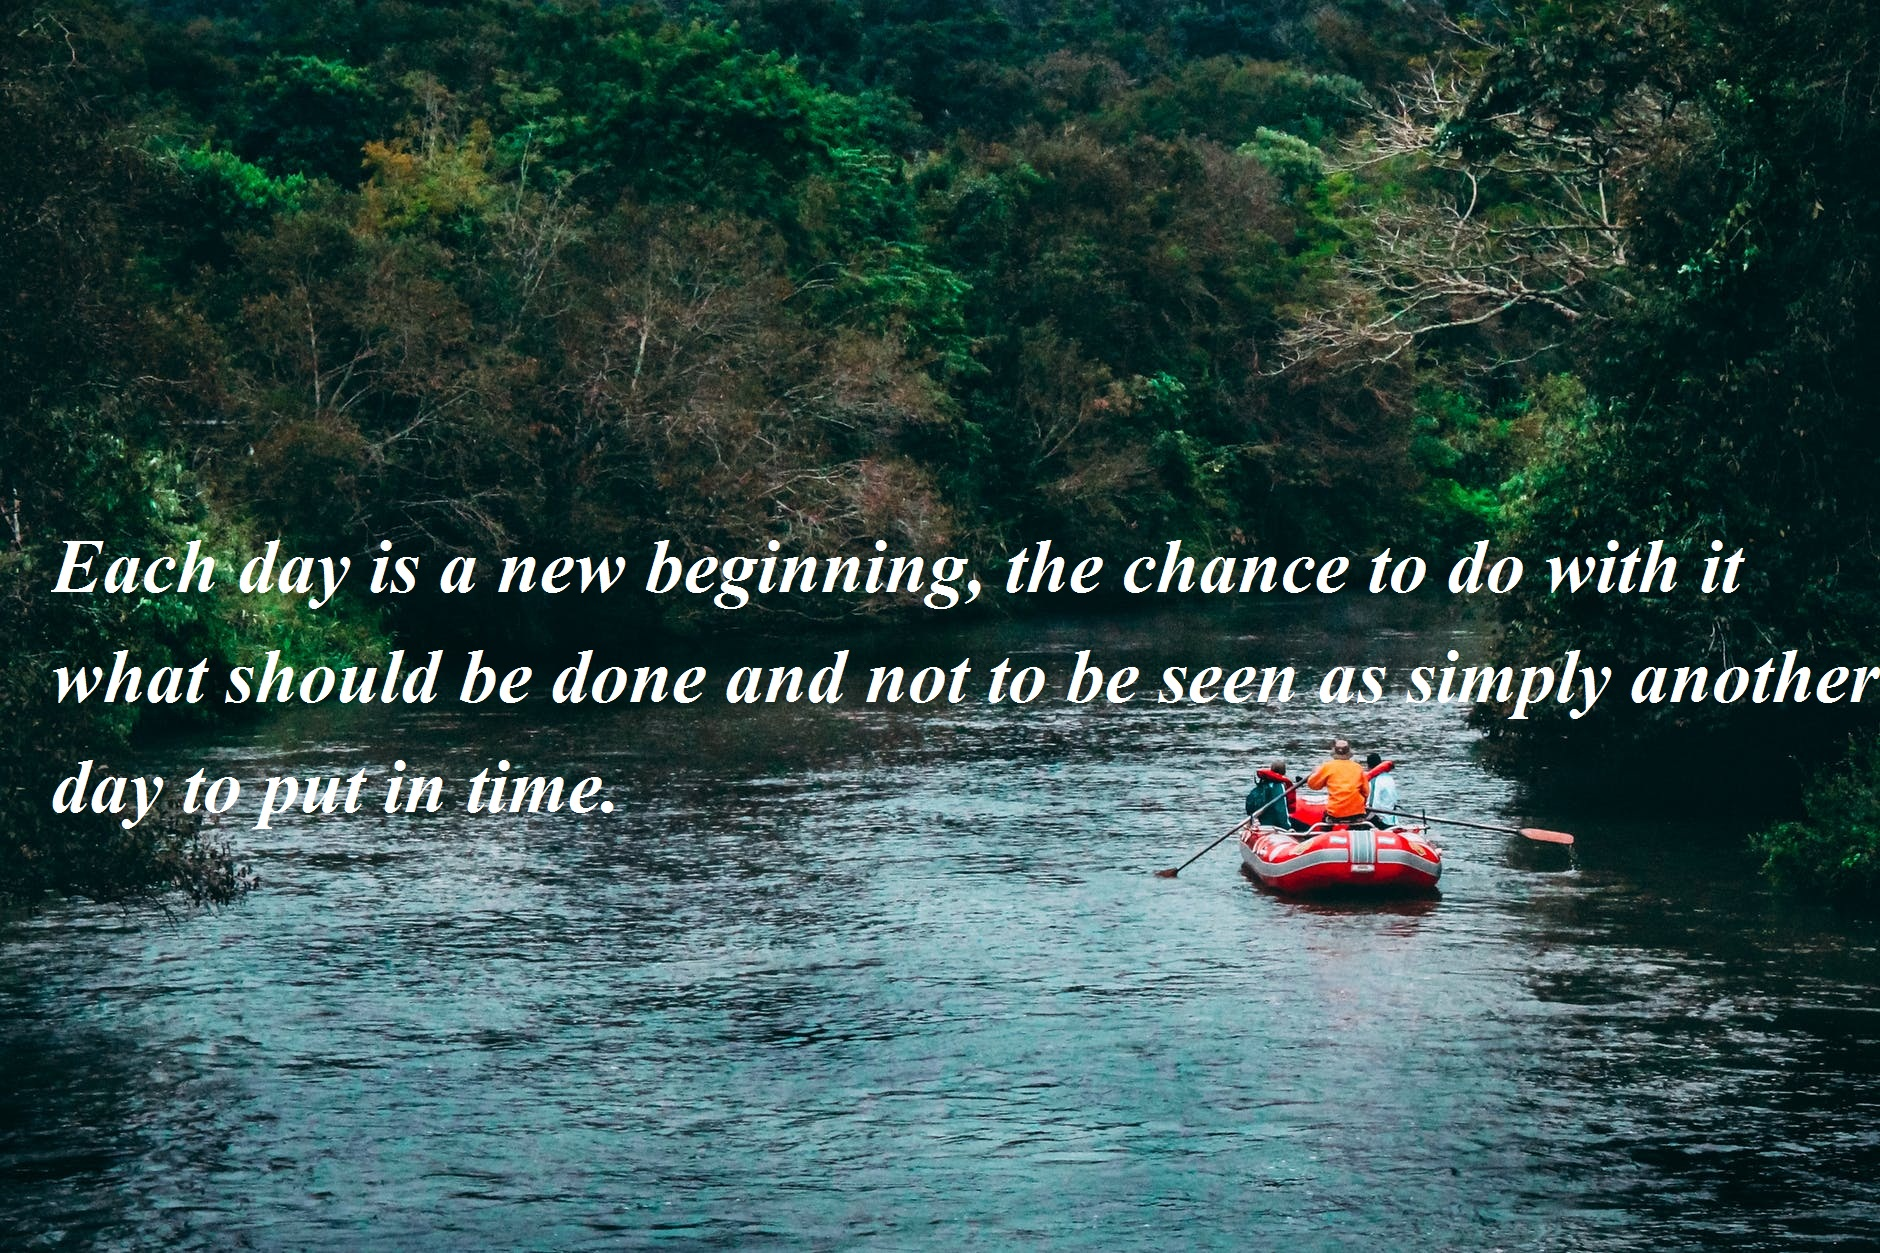 Quotes About Starting a New Chapter